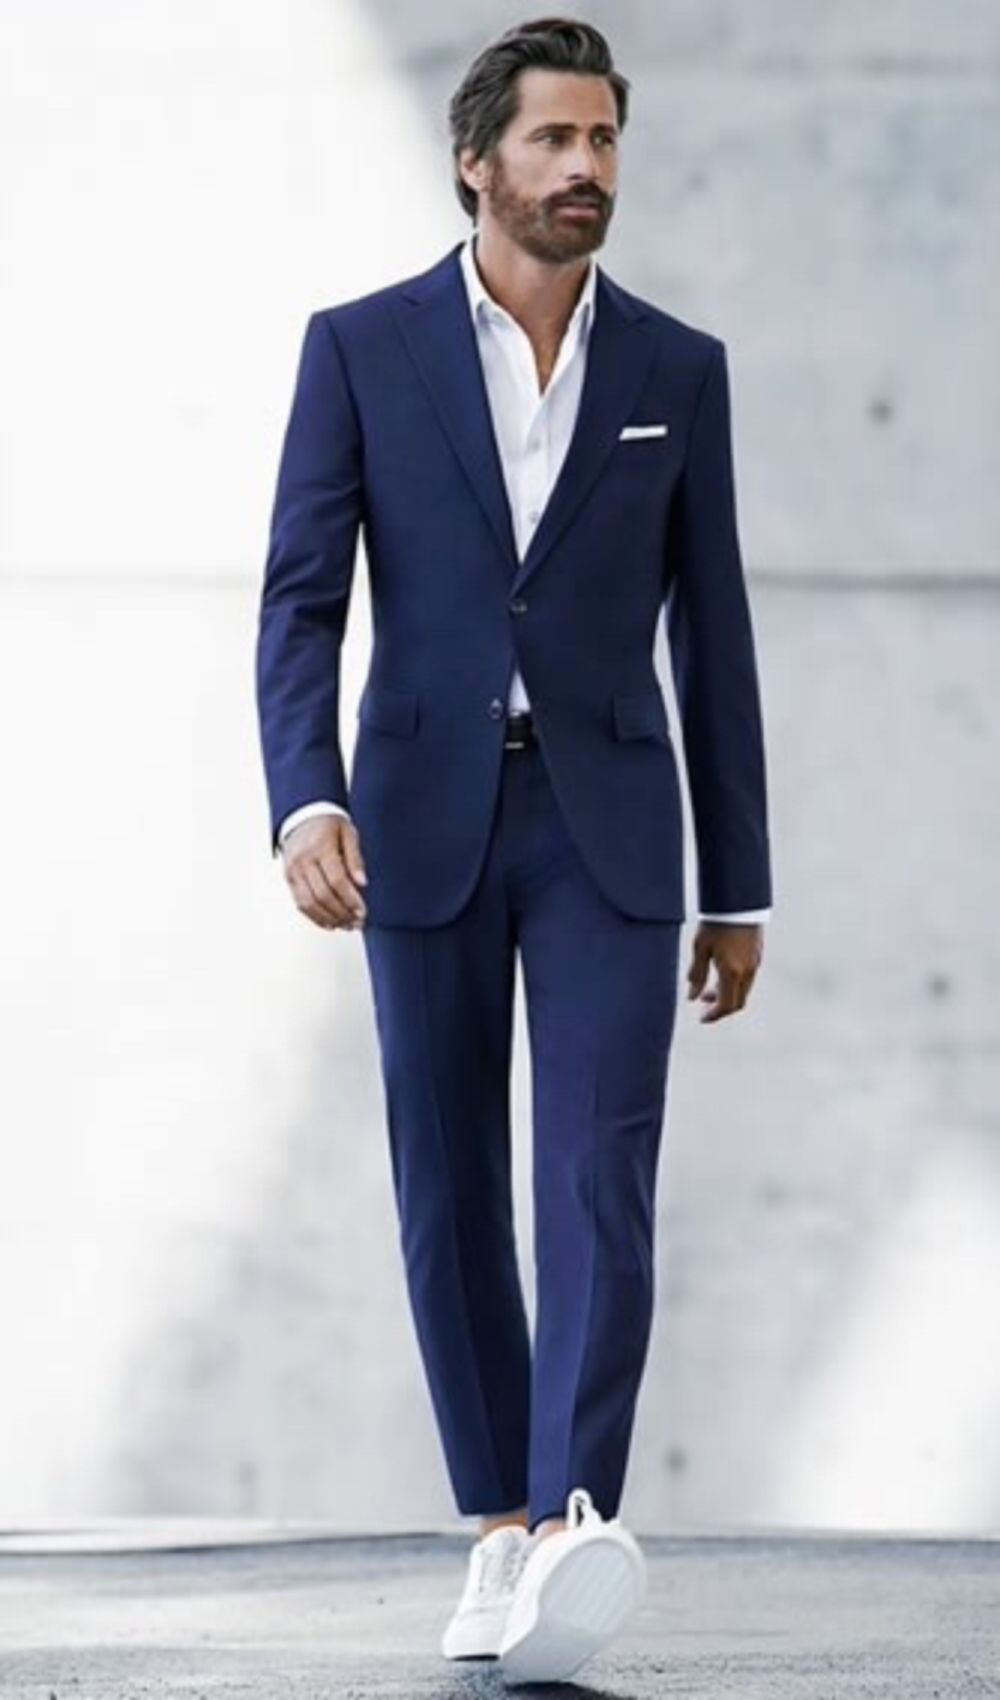 pin by nick heintz on males, real poses mens fashion, mens suits  terno slim fit, suits and sneakers, mens fashion suits, mens suits, fashion